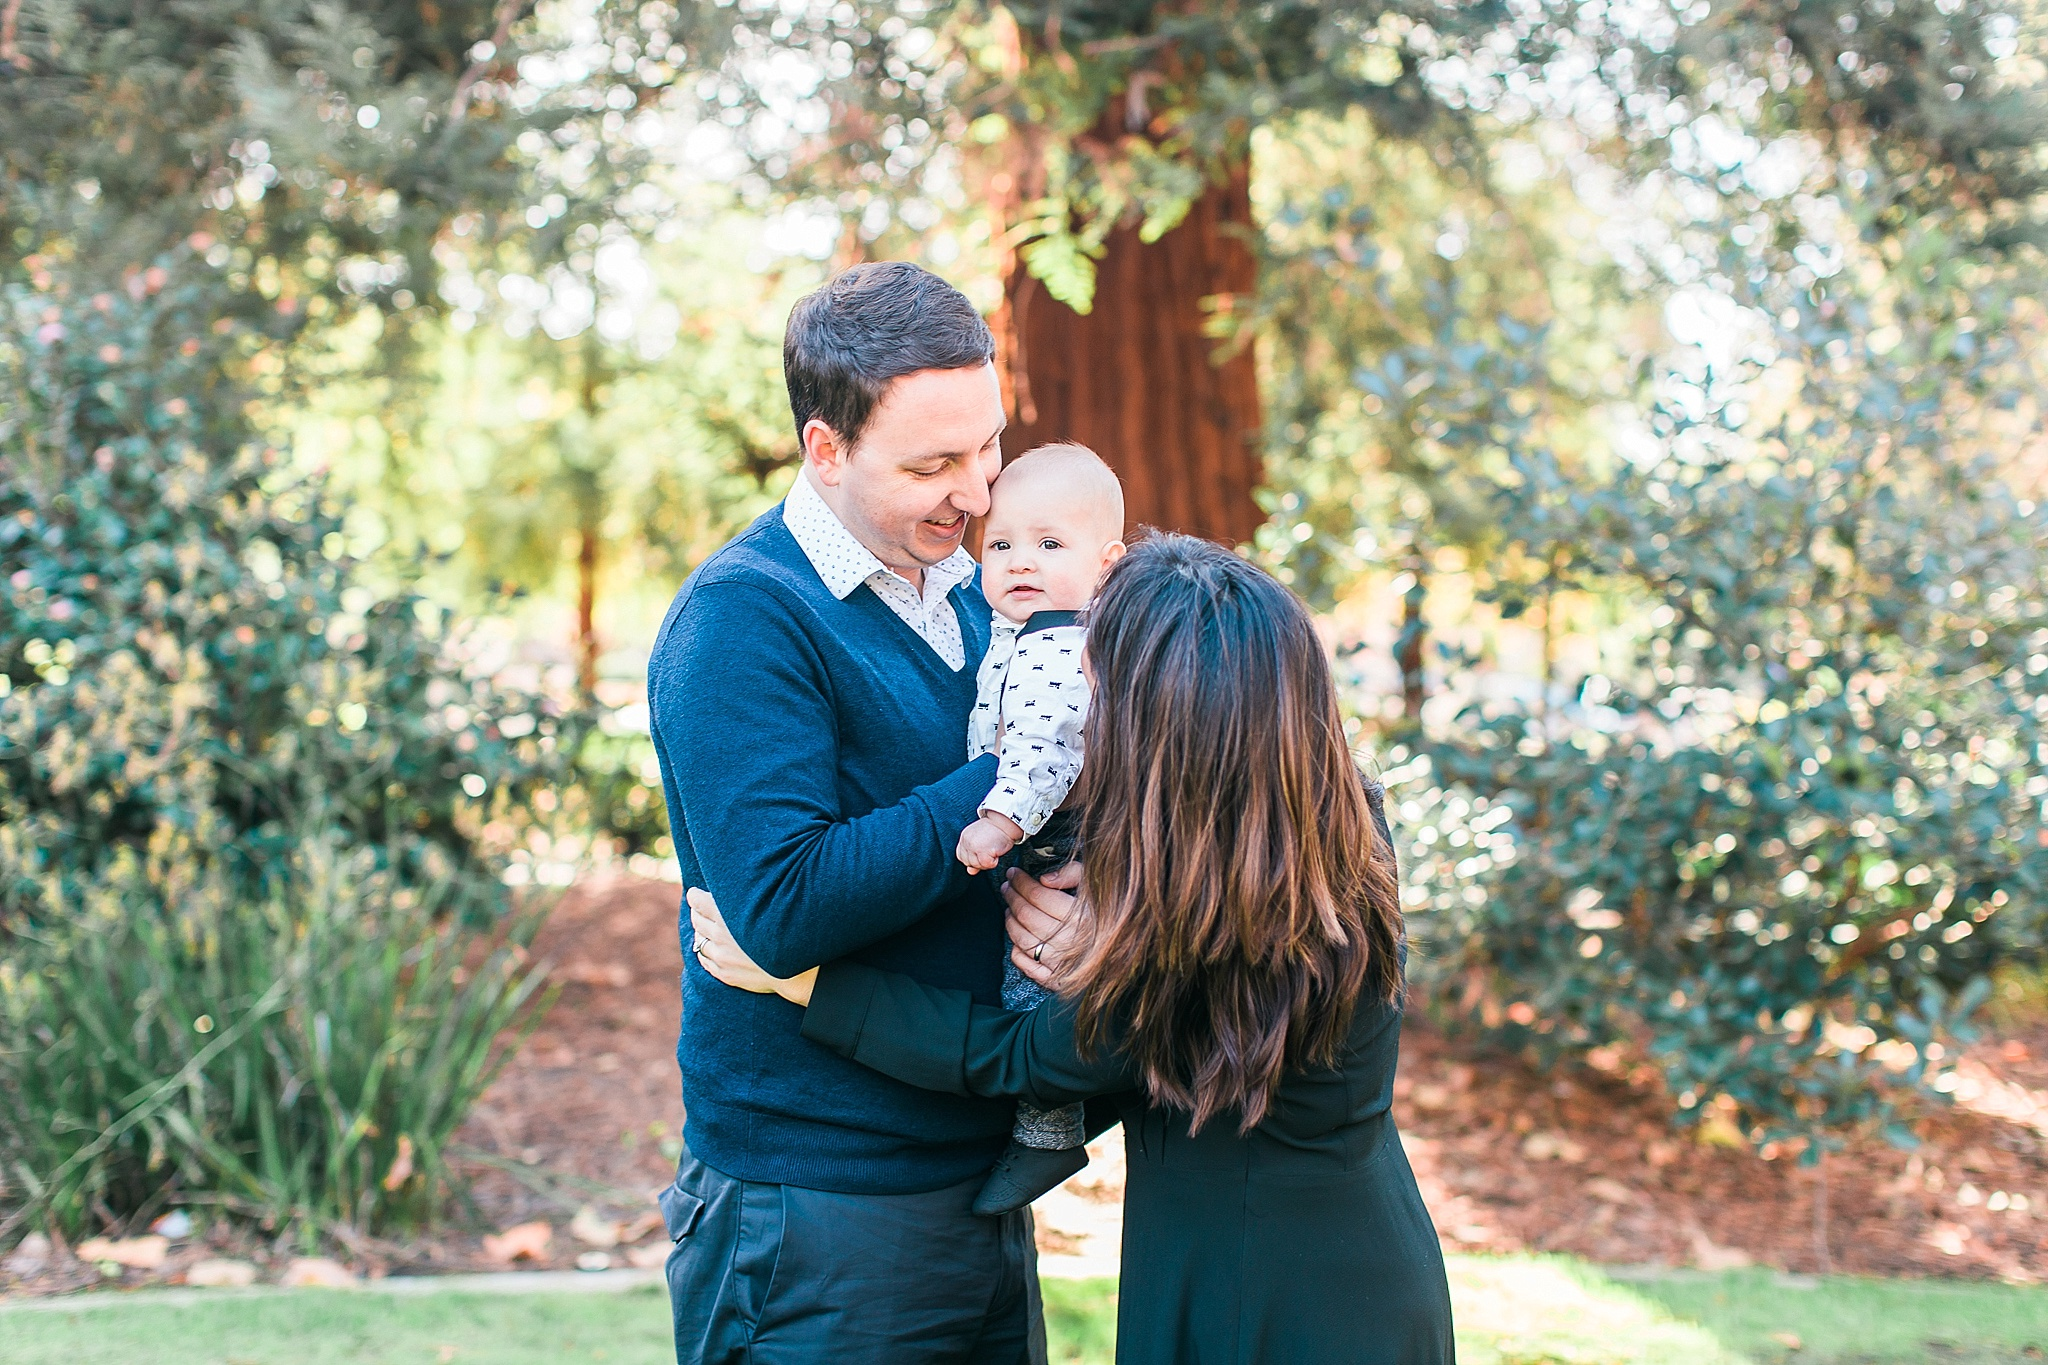 Claremont-Colleges-Family-Photos-11_WEB.jpg